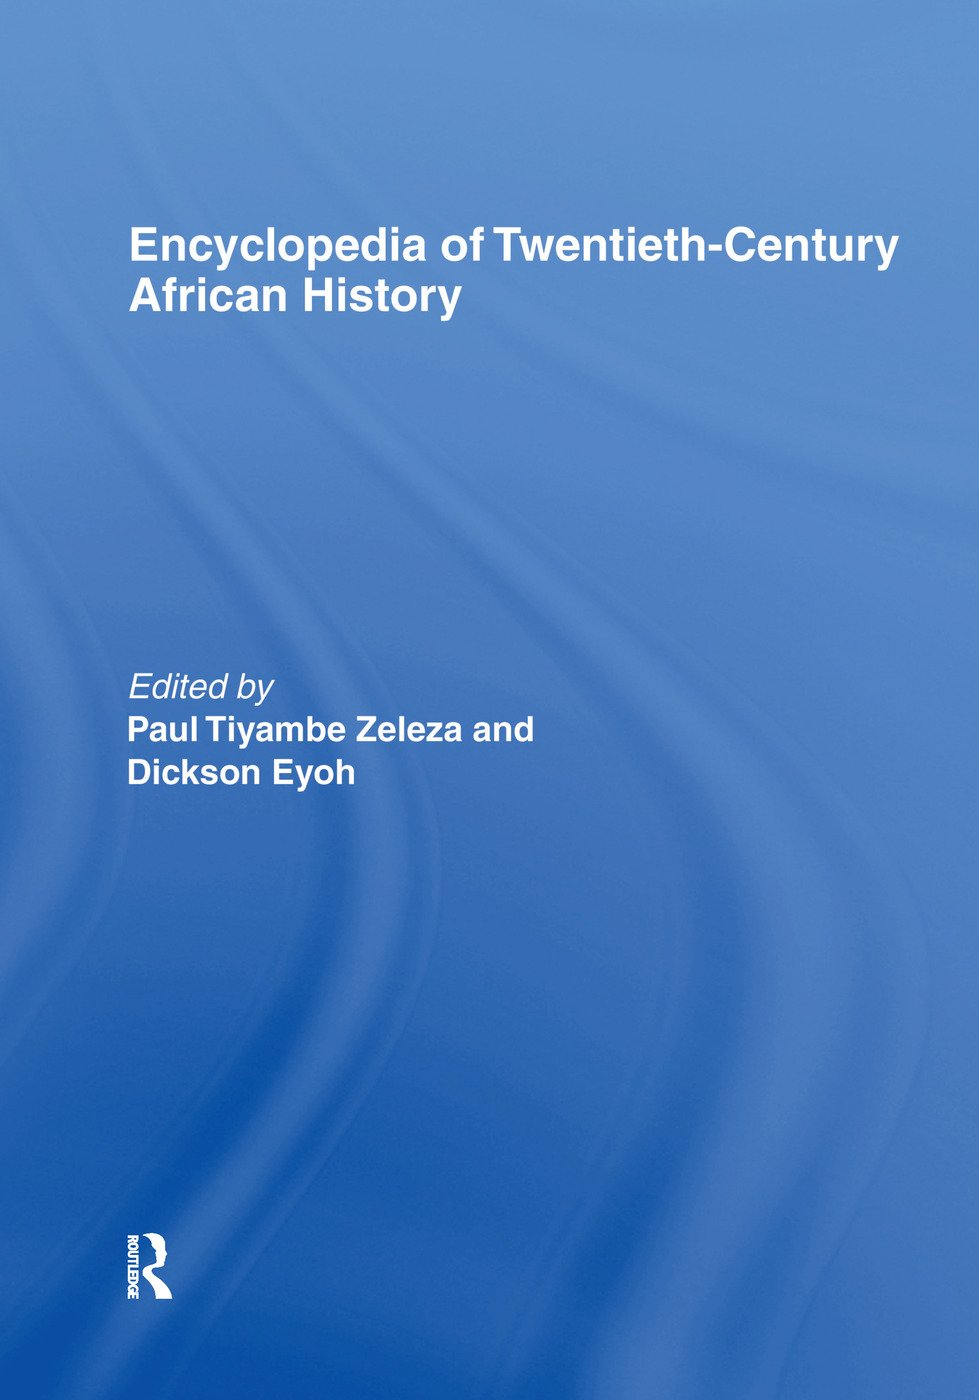 Encyclopedia of Twentieth-Century African History: 1st Edition (Paperback) book cover